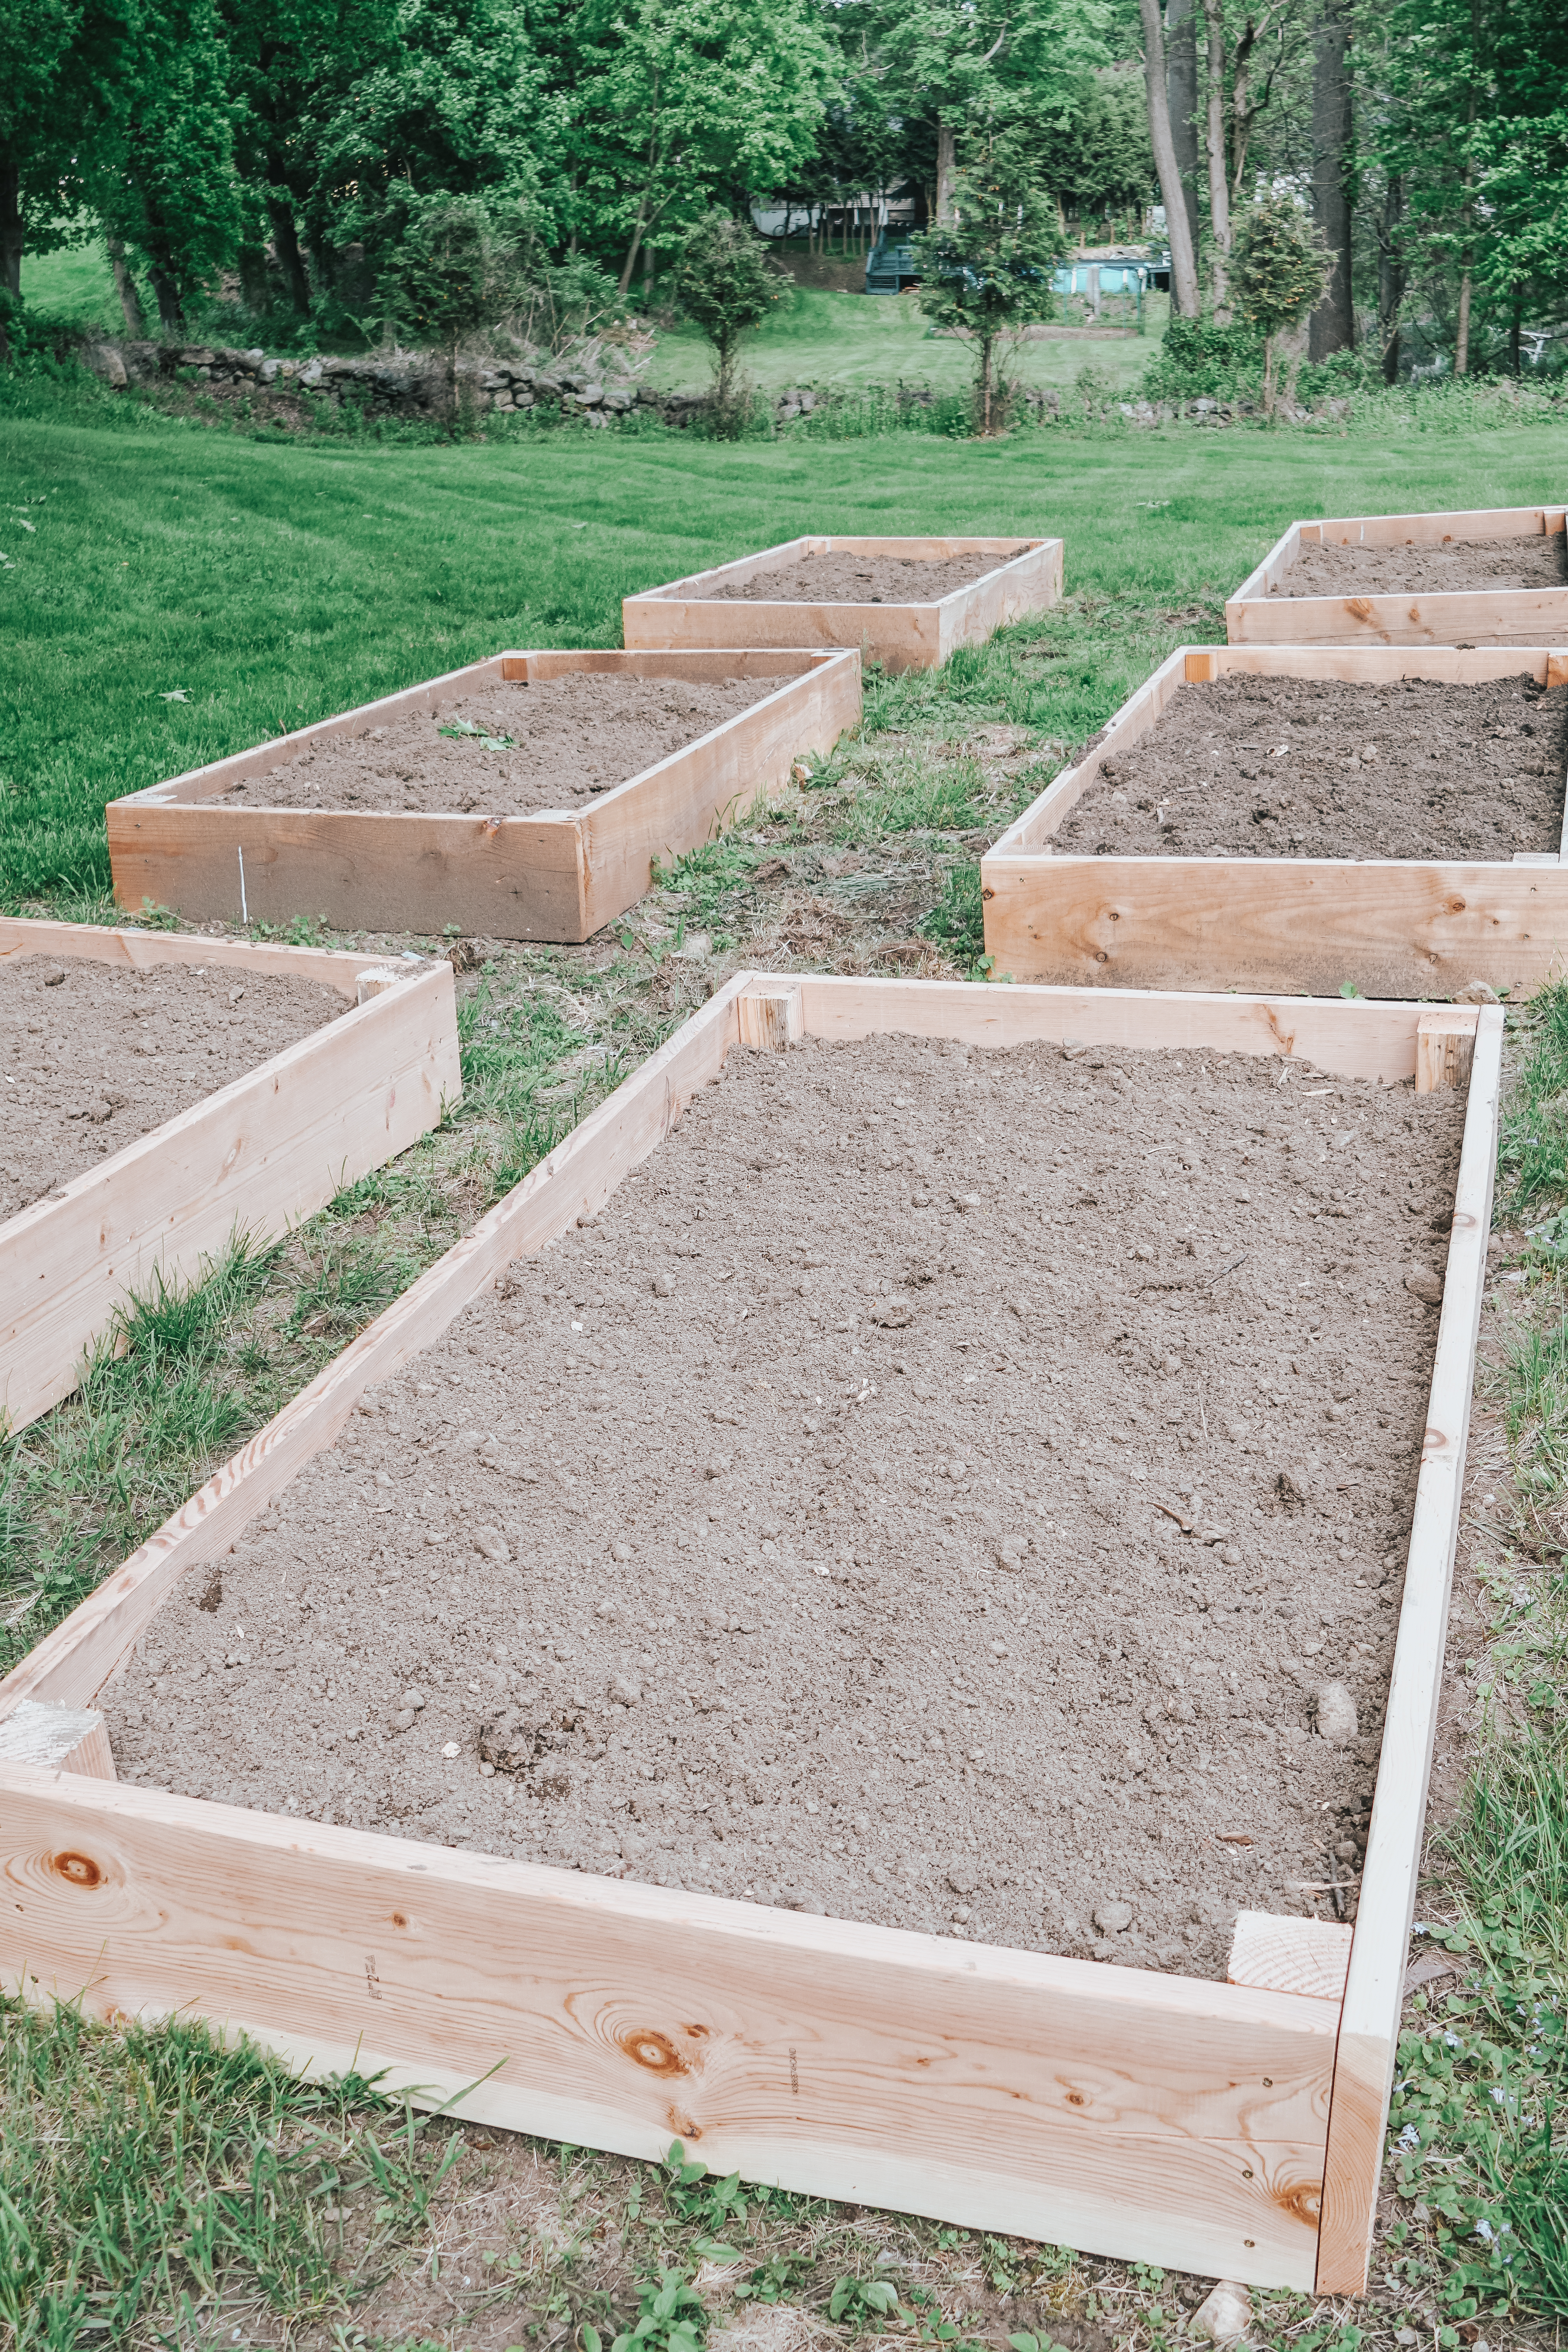 NY-based home and garden blogger, Christine Covino, outlines an easy and inexpensive tutorial on how to build raised garden beds. Click here for more!